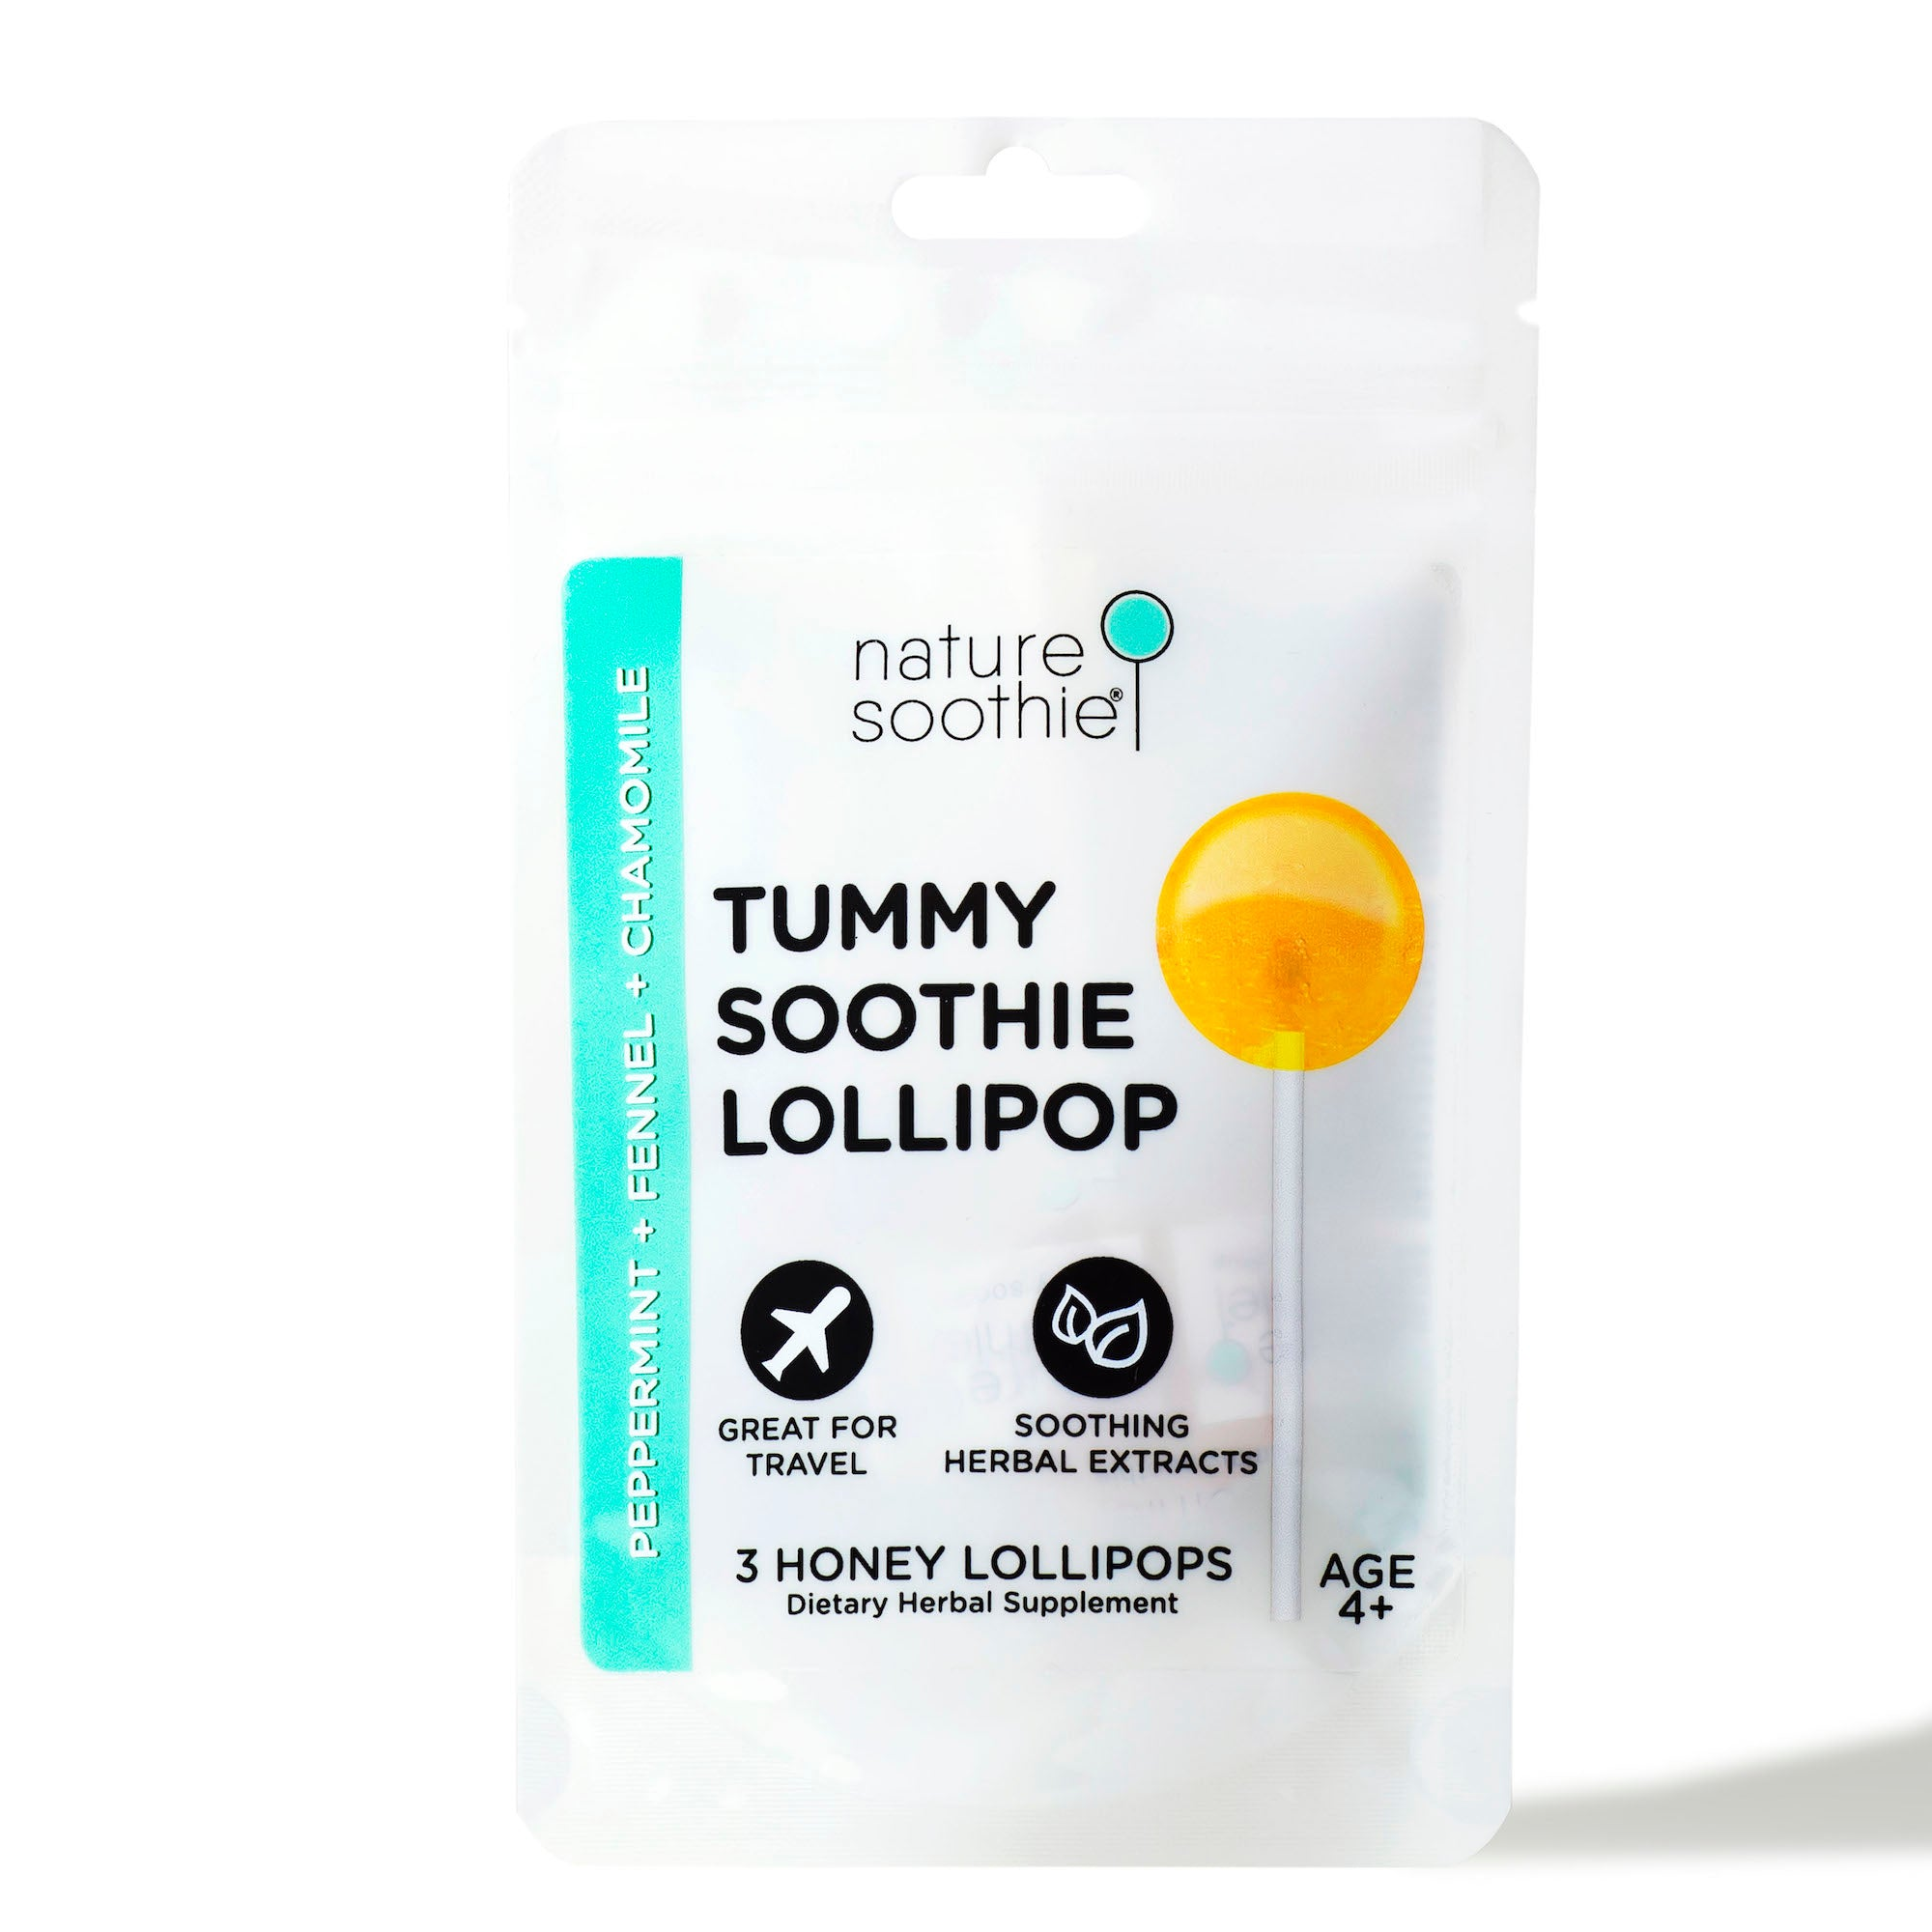 Tummy Soothie Lollipop (3-pack)